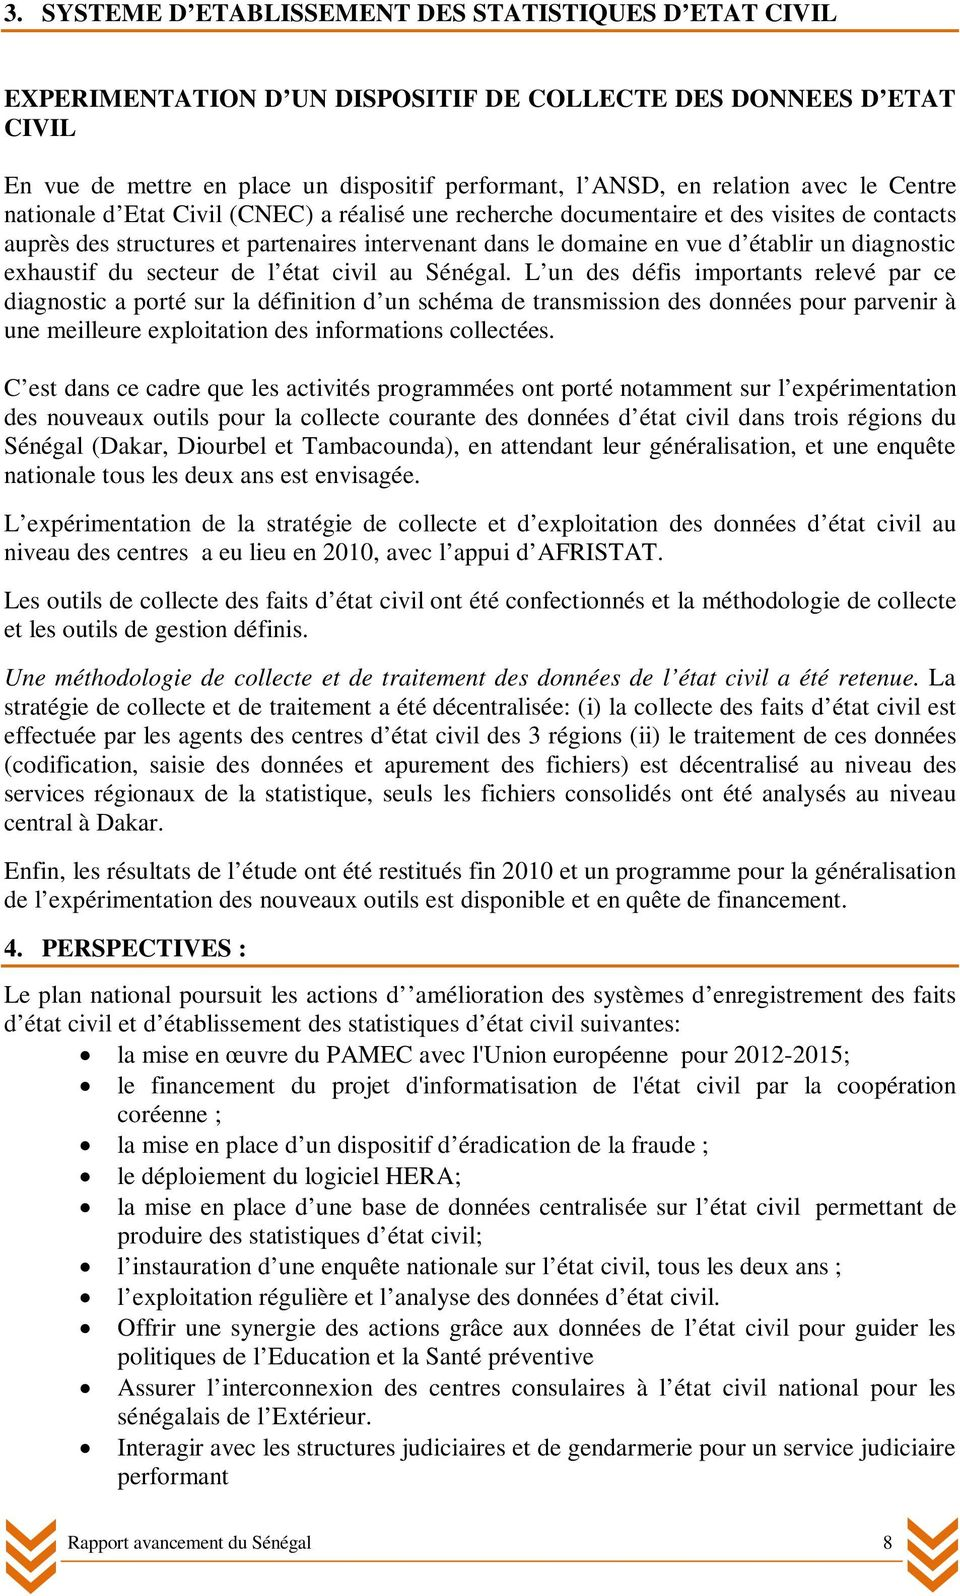 diagnostic exhaustif du secteur de l état civil au Sénégal.